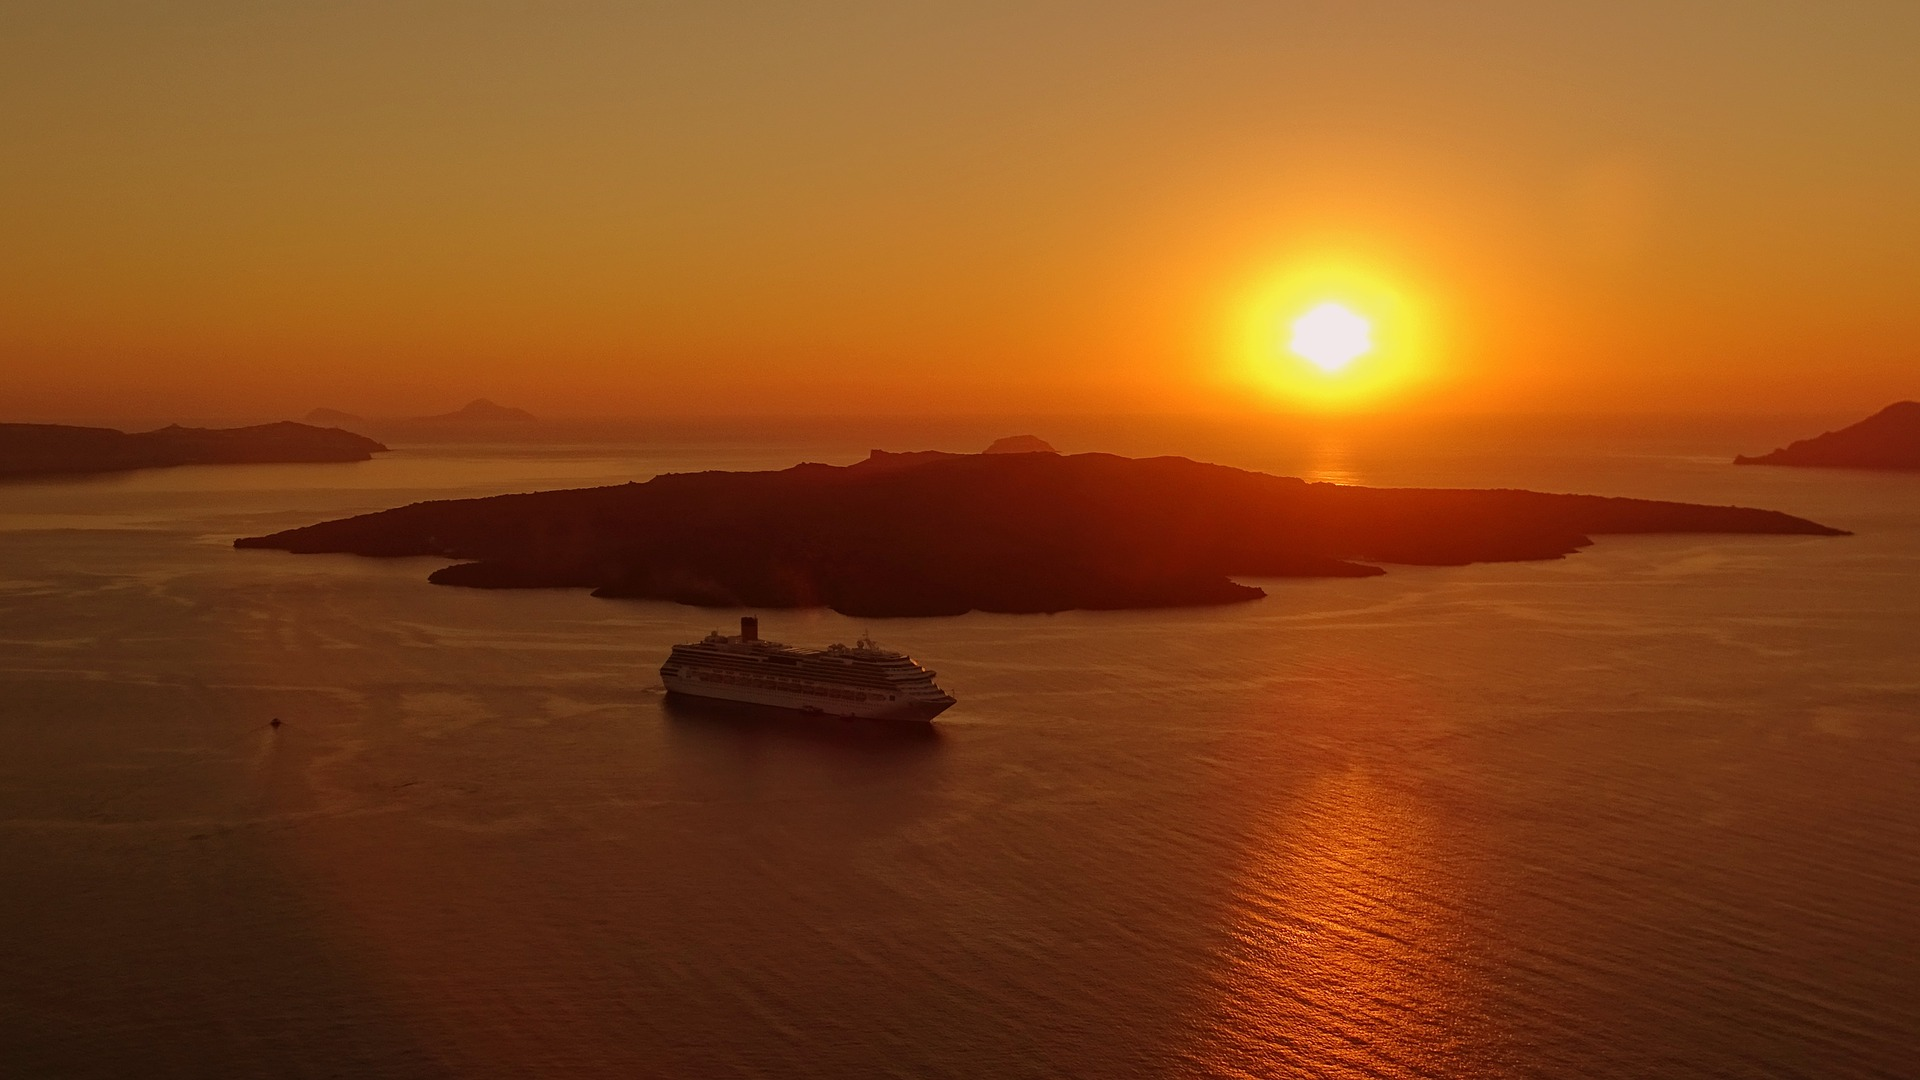 How many days in Santorini - Amazing Santorini sunset